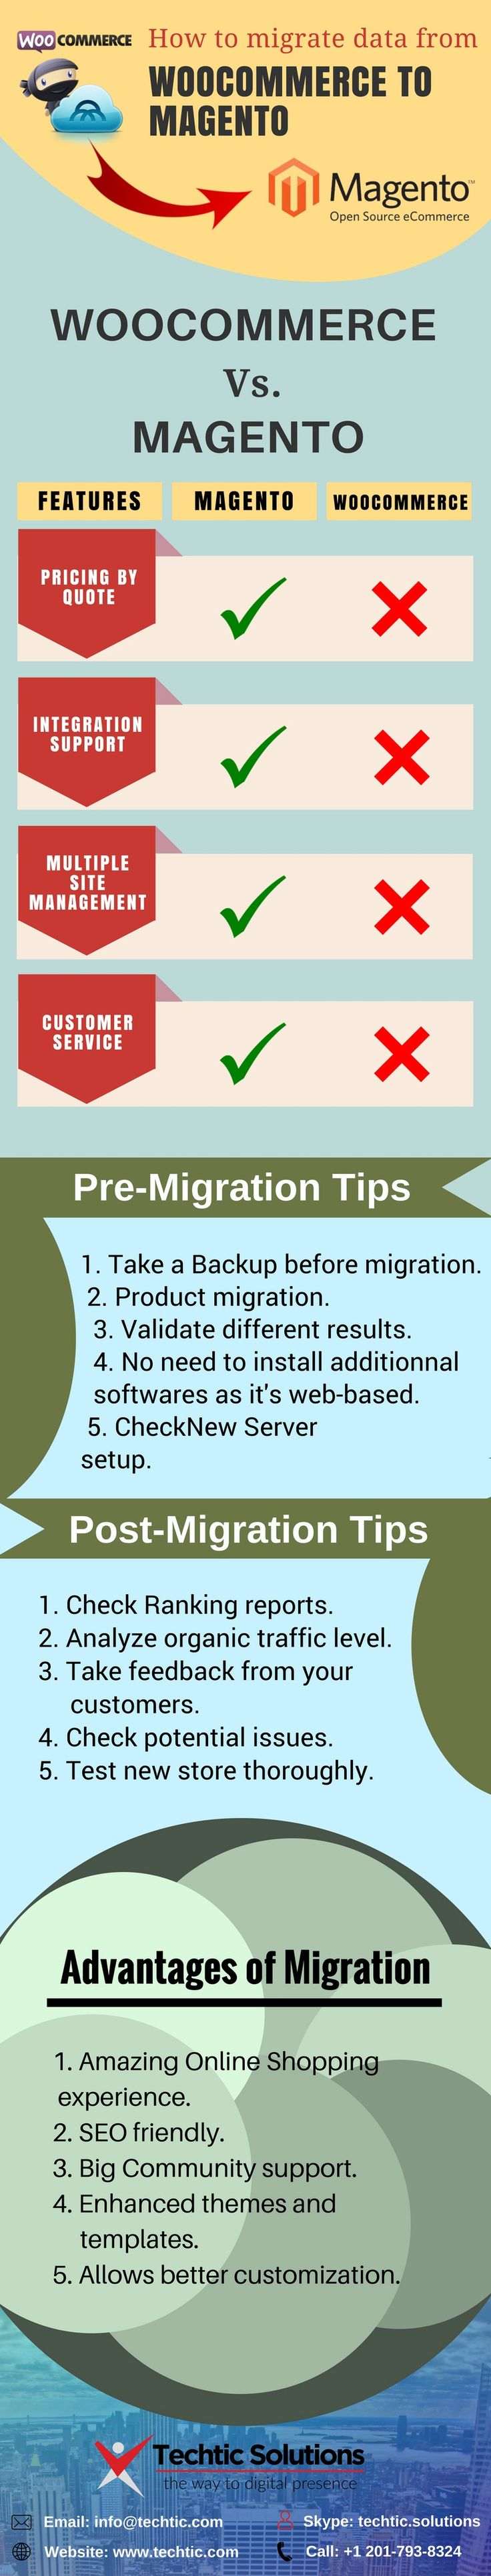 How to Migrate Data from WooCommerce to Magento eCommerce Store -  If you want to migrate your store into Magento eCommerce store or any other eCommerce store call us @ +1 201-793-8324 or visit us @ https://www.techtic.com/magento-development-company/  #Magento #WooCommerce #MagentoDevelopment #MagentoDevelopmentServices #MagentoDevelopmentCompany #MagentoDeveloper #HireMagentoDeveloper #WooCommerceDevelopmentCompany